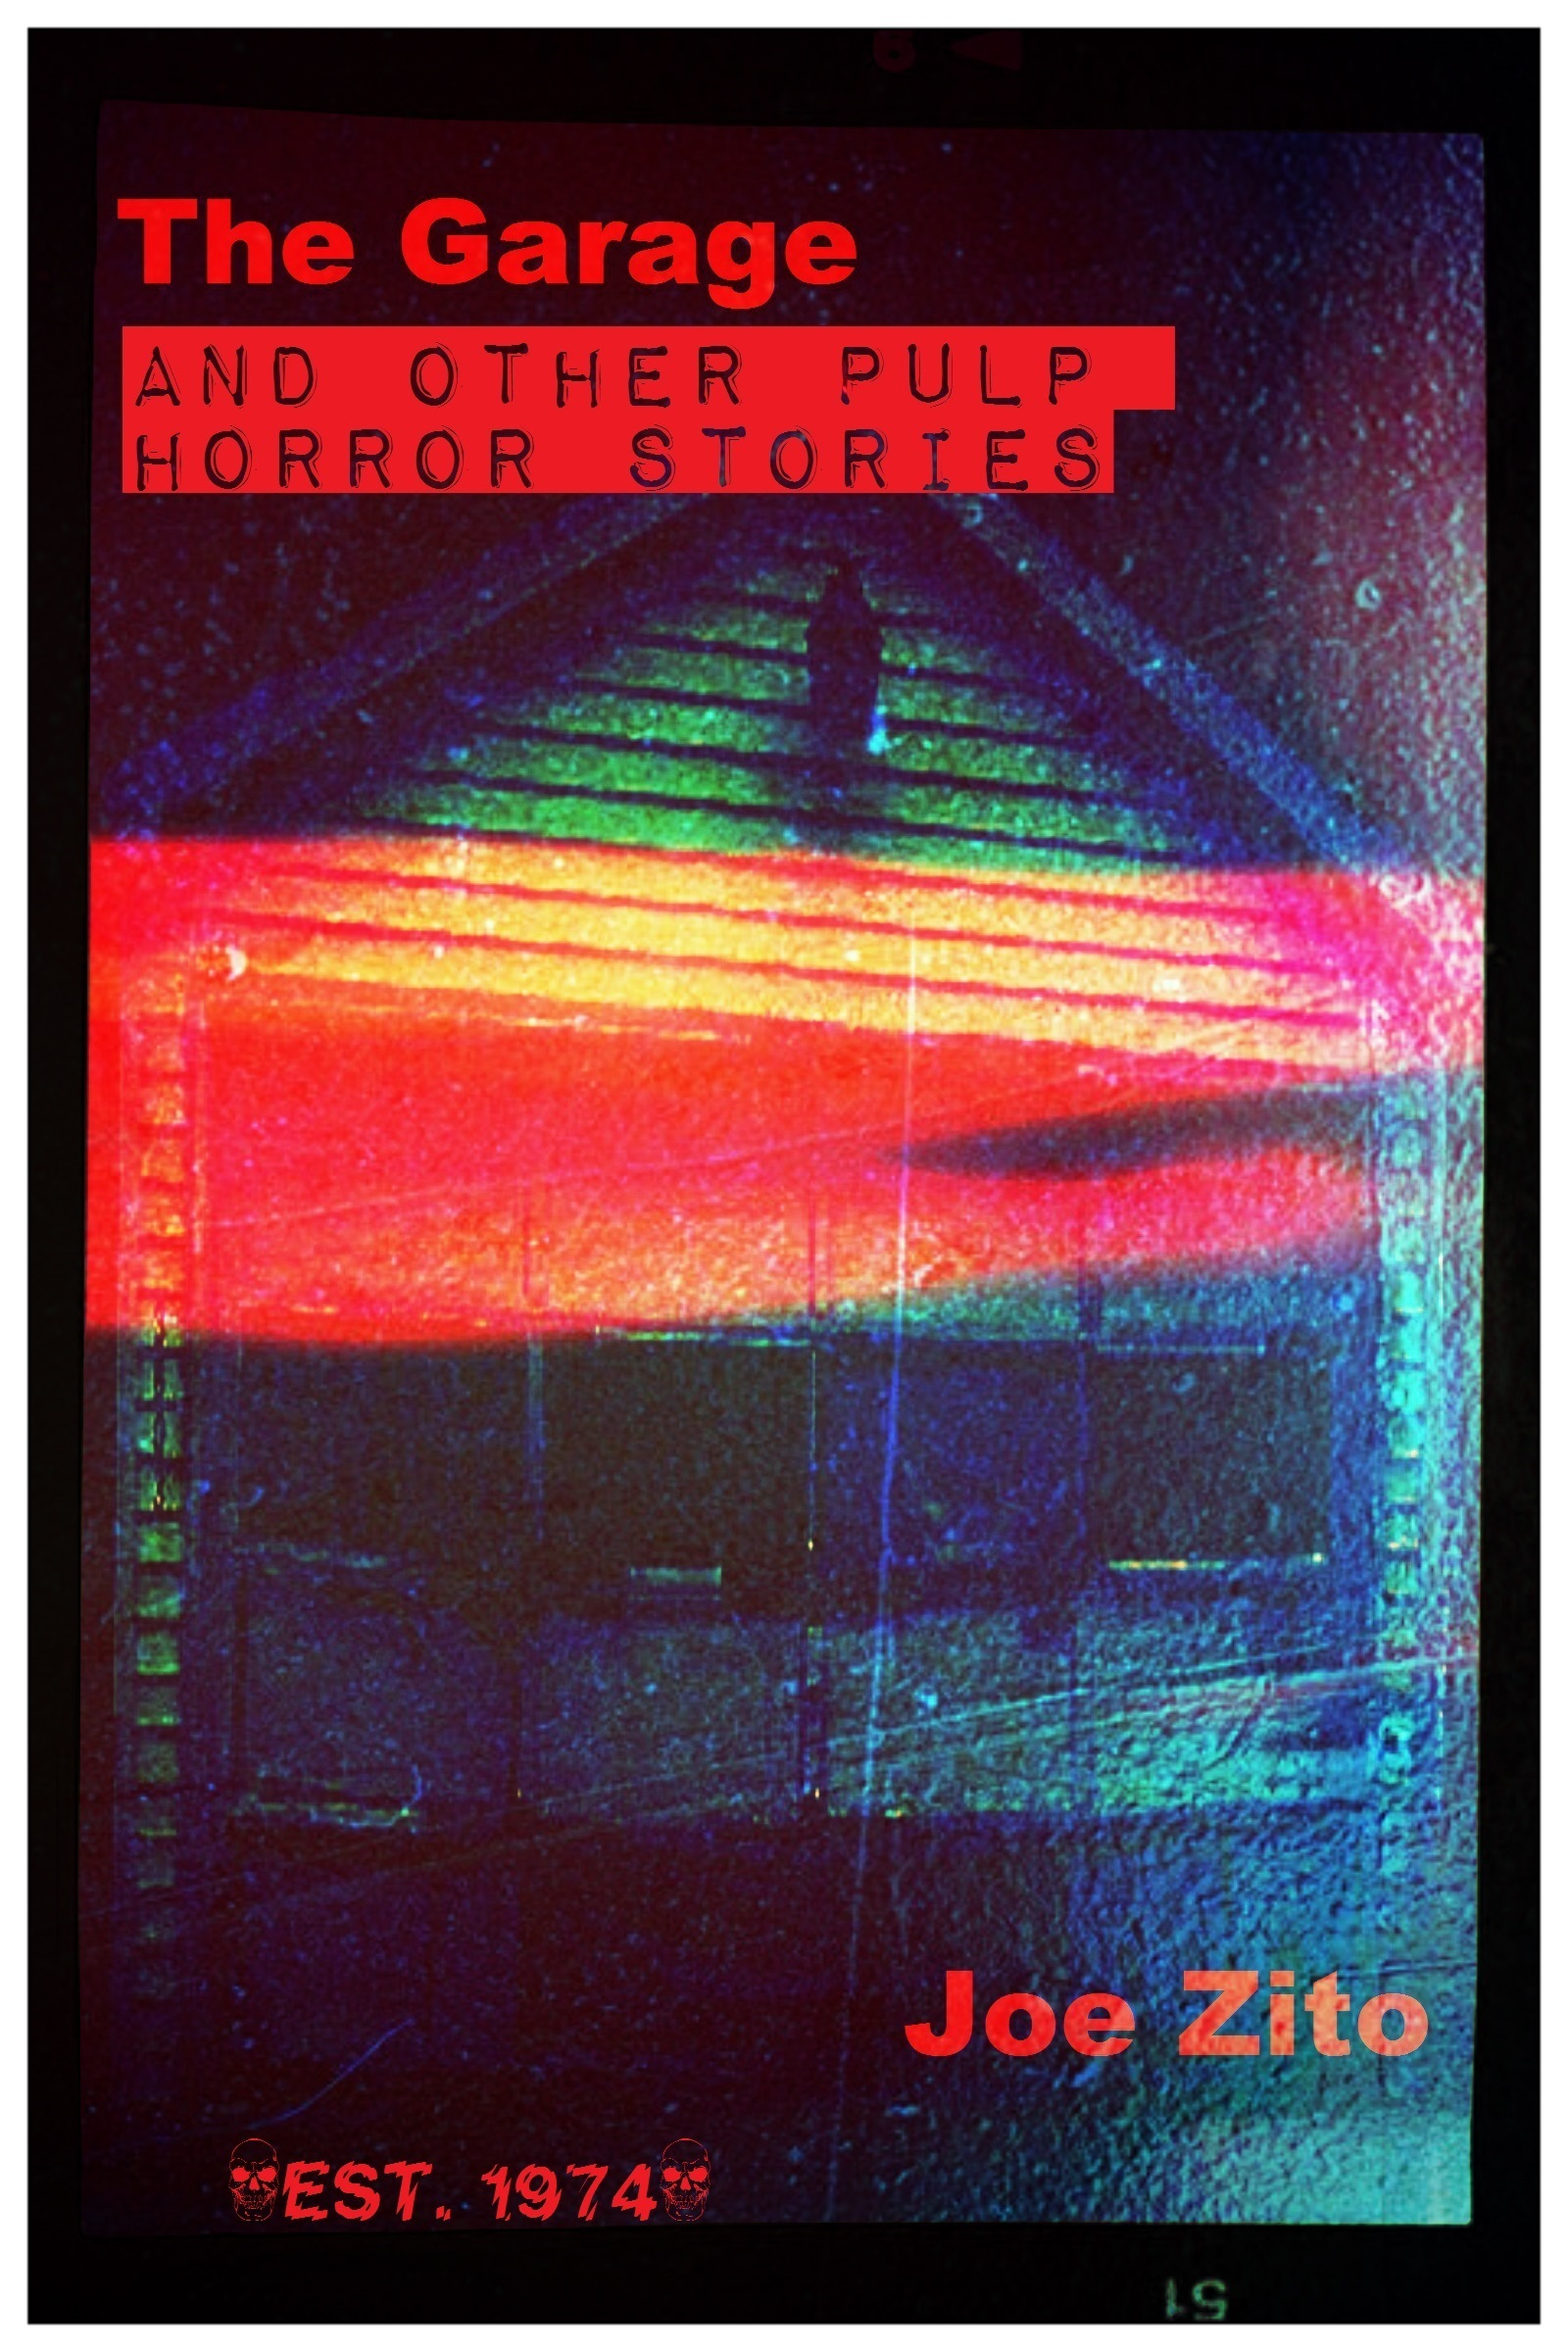 The Garage And Other Pulp Horror Stories  by  Joe Zito